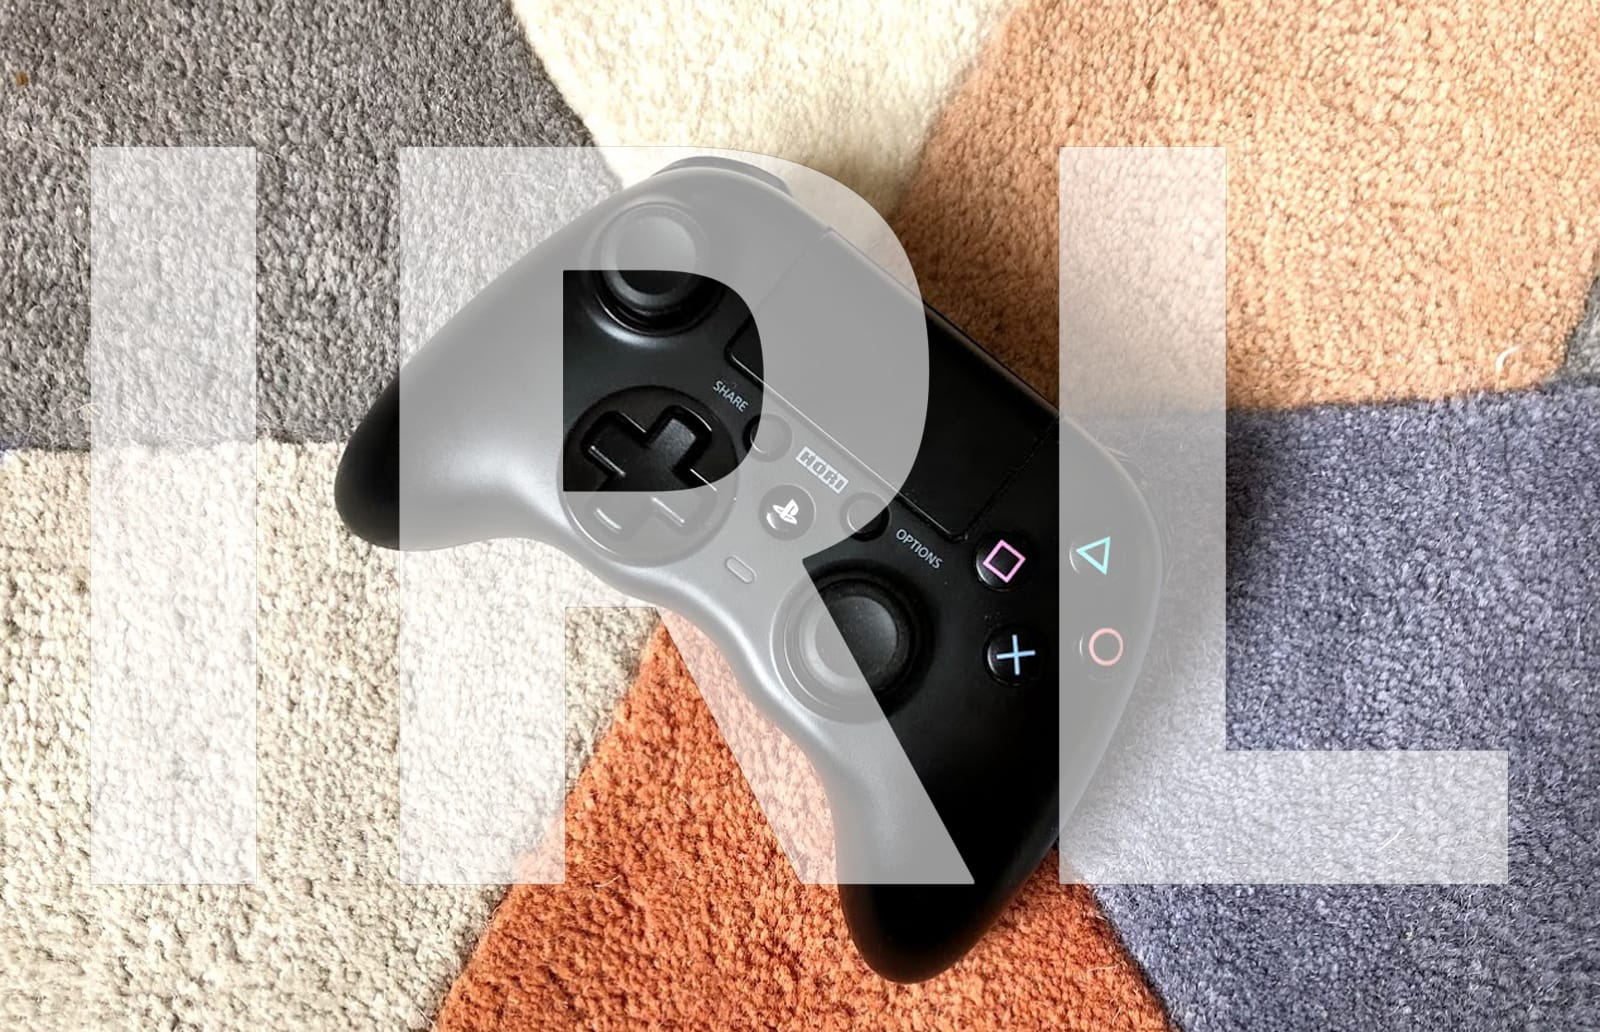 What we're buying: An official third-party PS4 controller